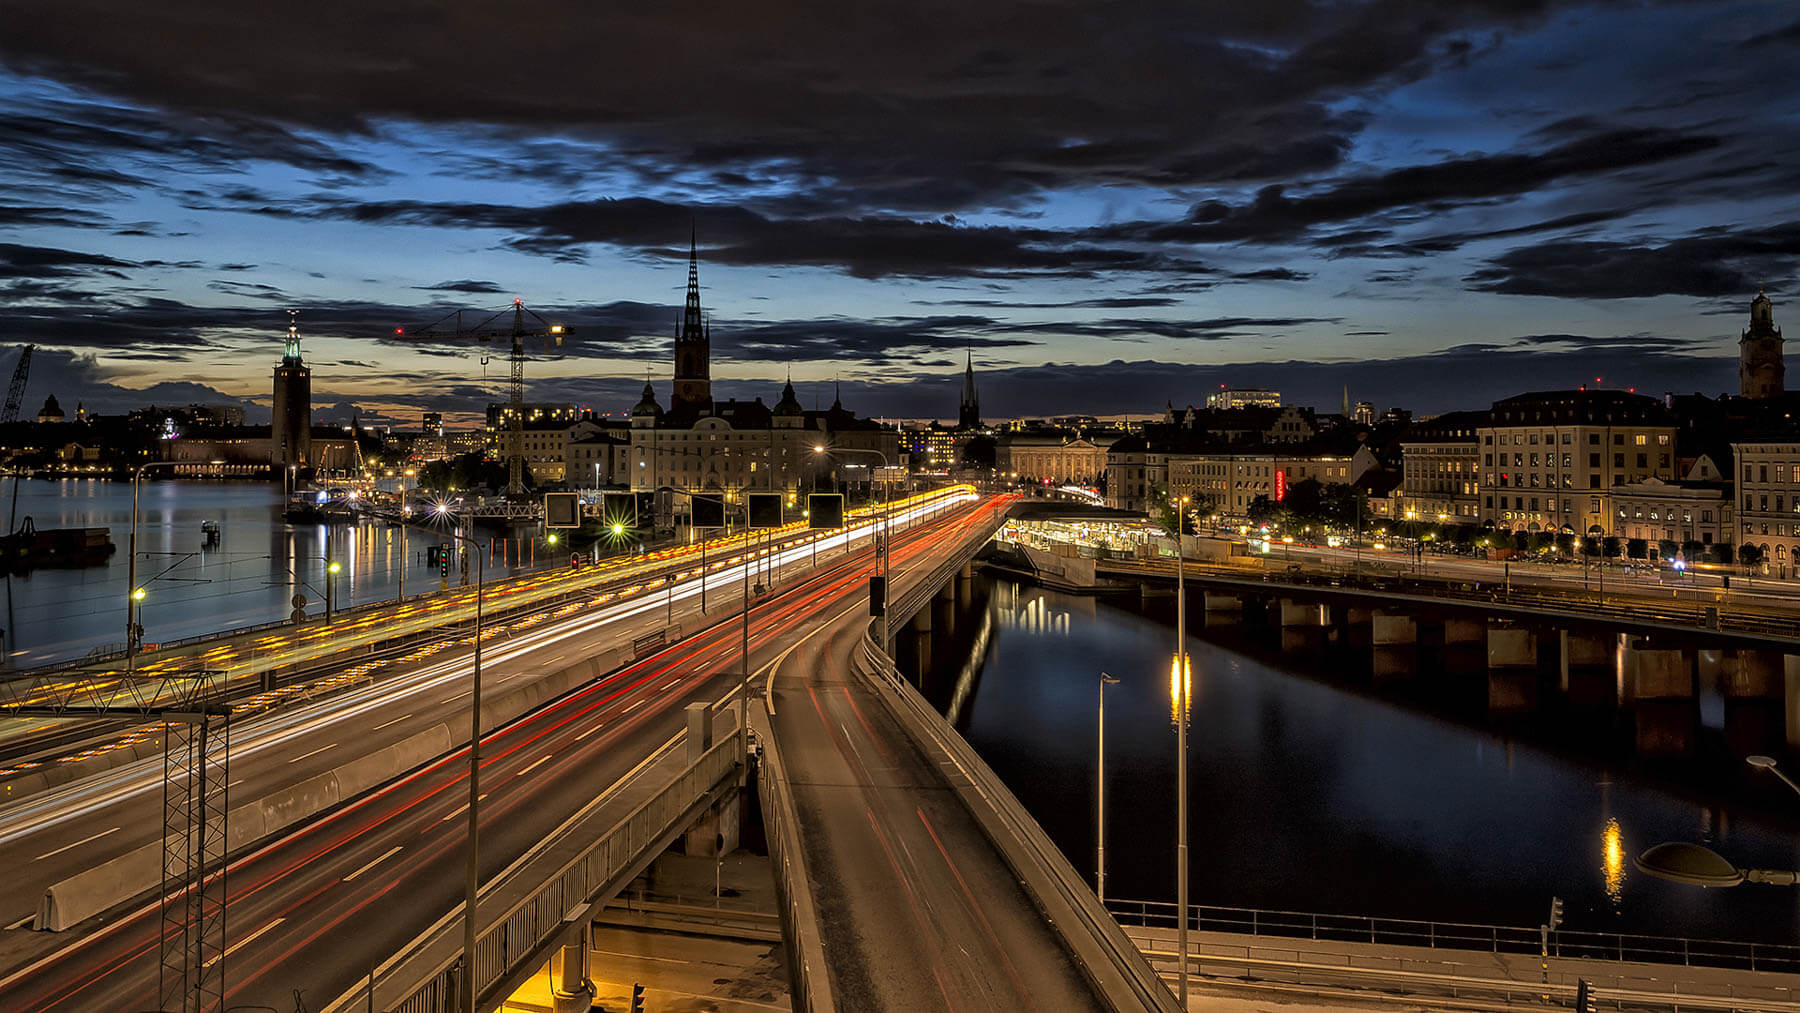 Private Phototour In Stockholm  Phototour And Sightseeing In Stockholm Day